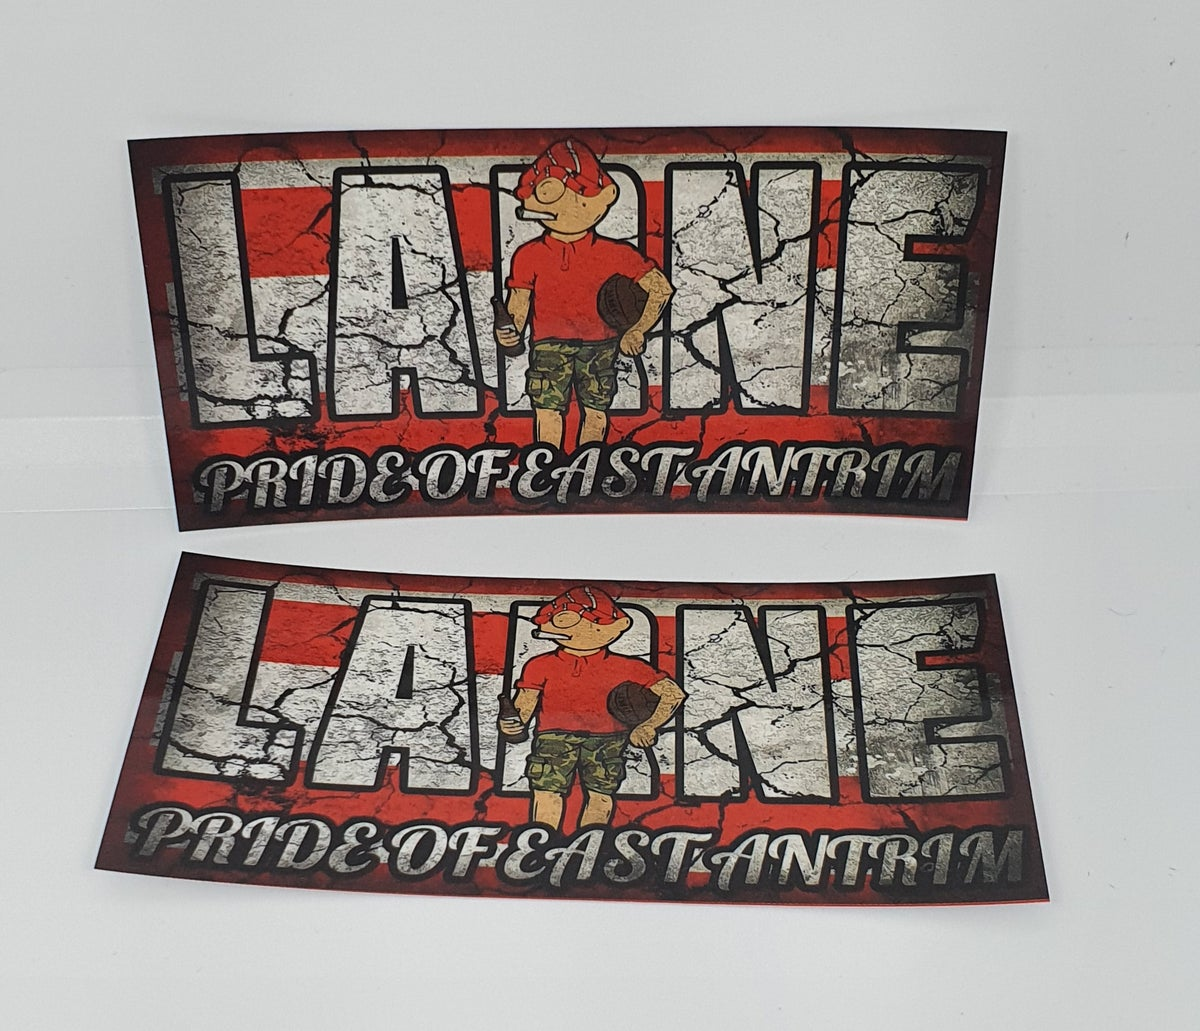 Pack of 25 10x5cm Larne Pride of East Antrim football/ultras stickers.